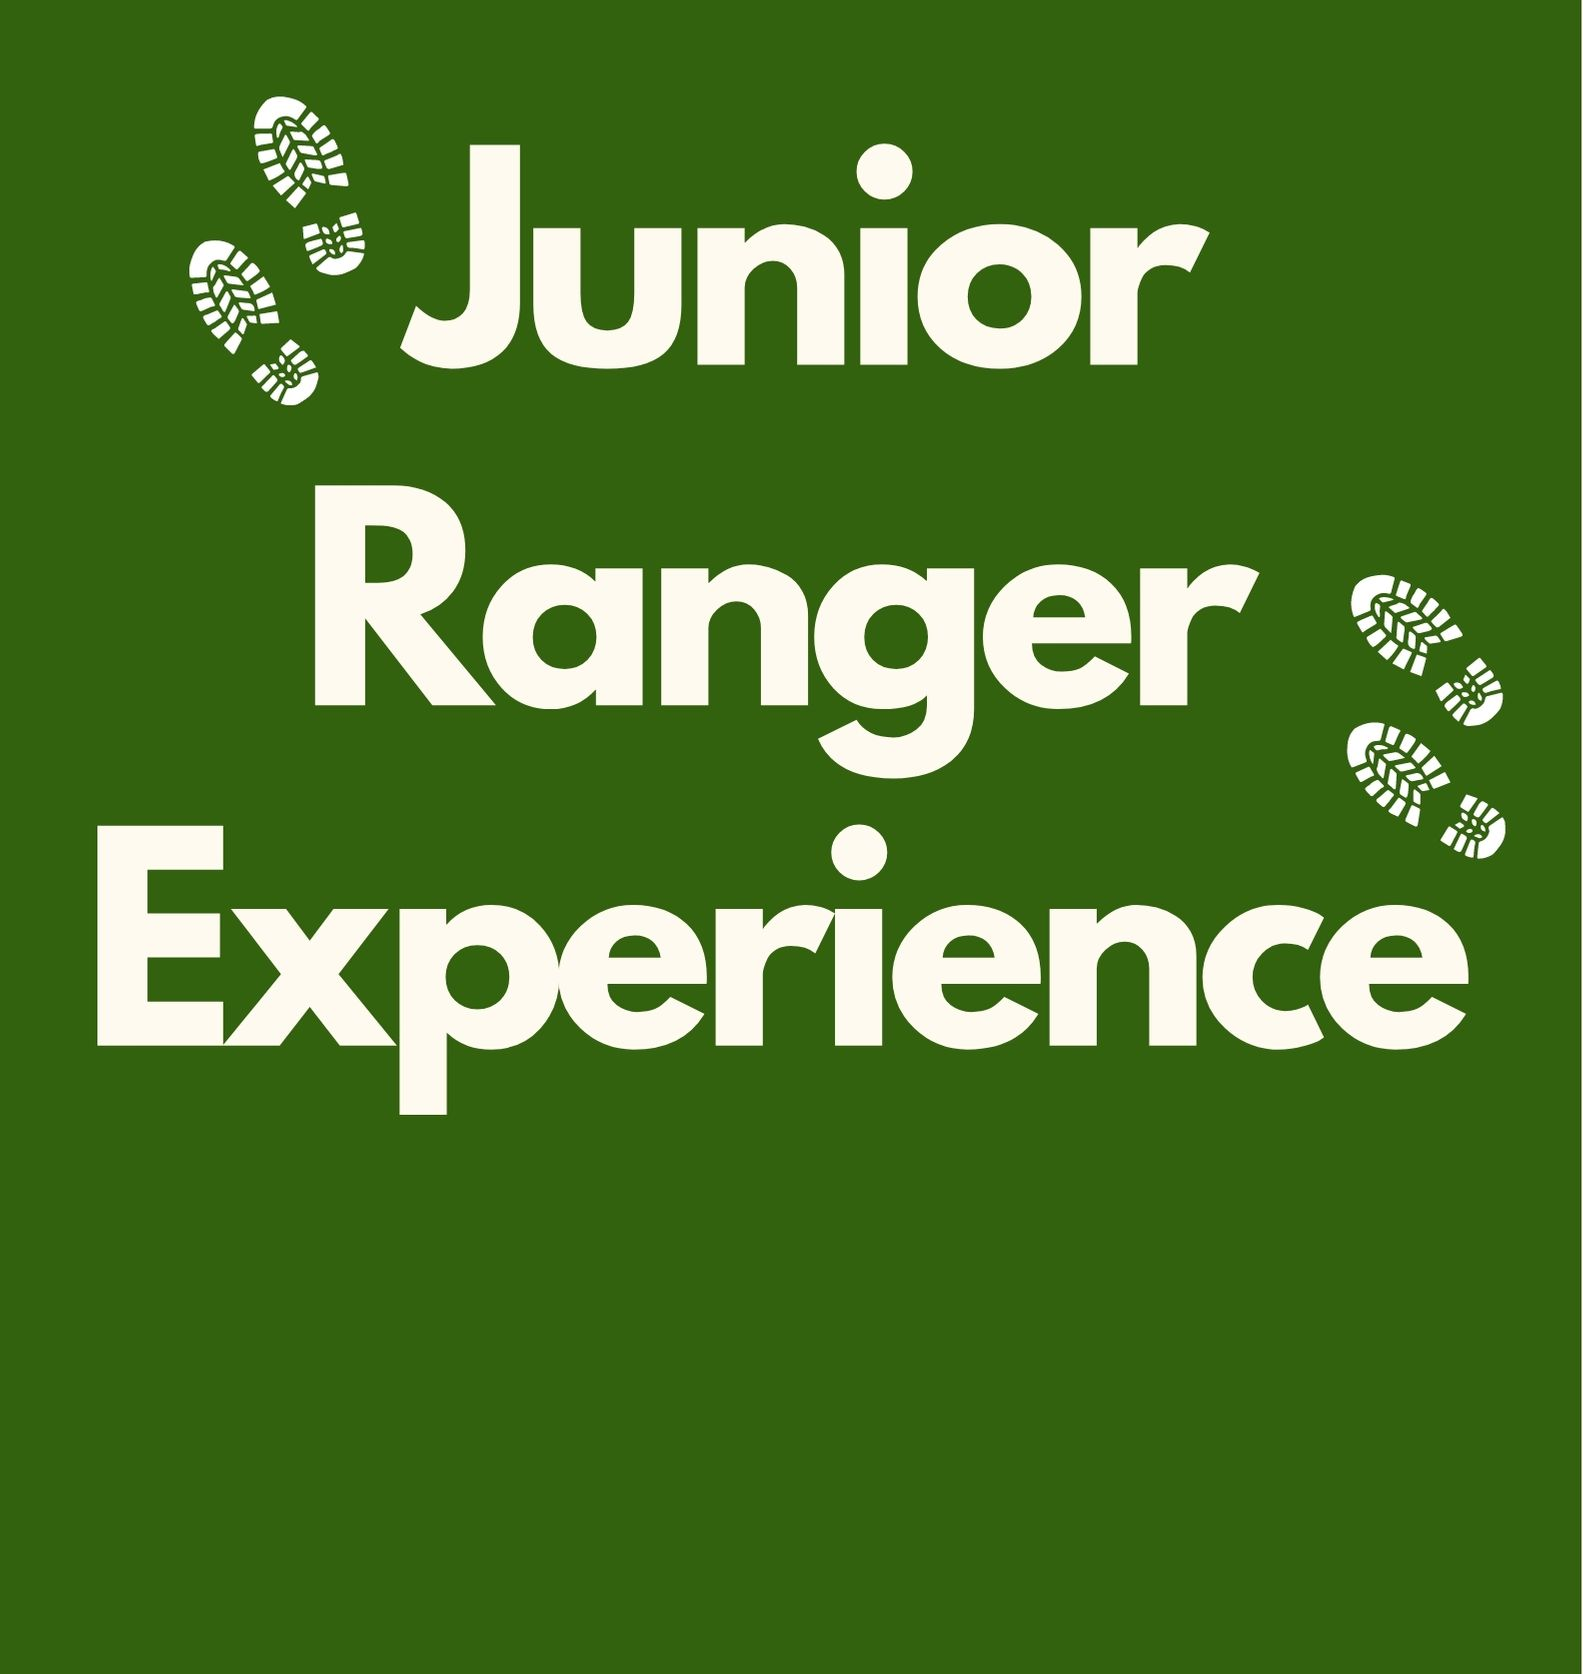 Junior Ranger Experience